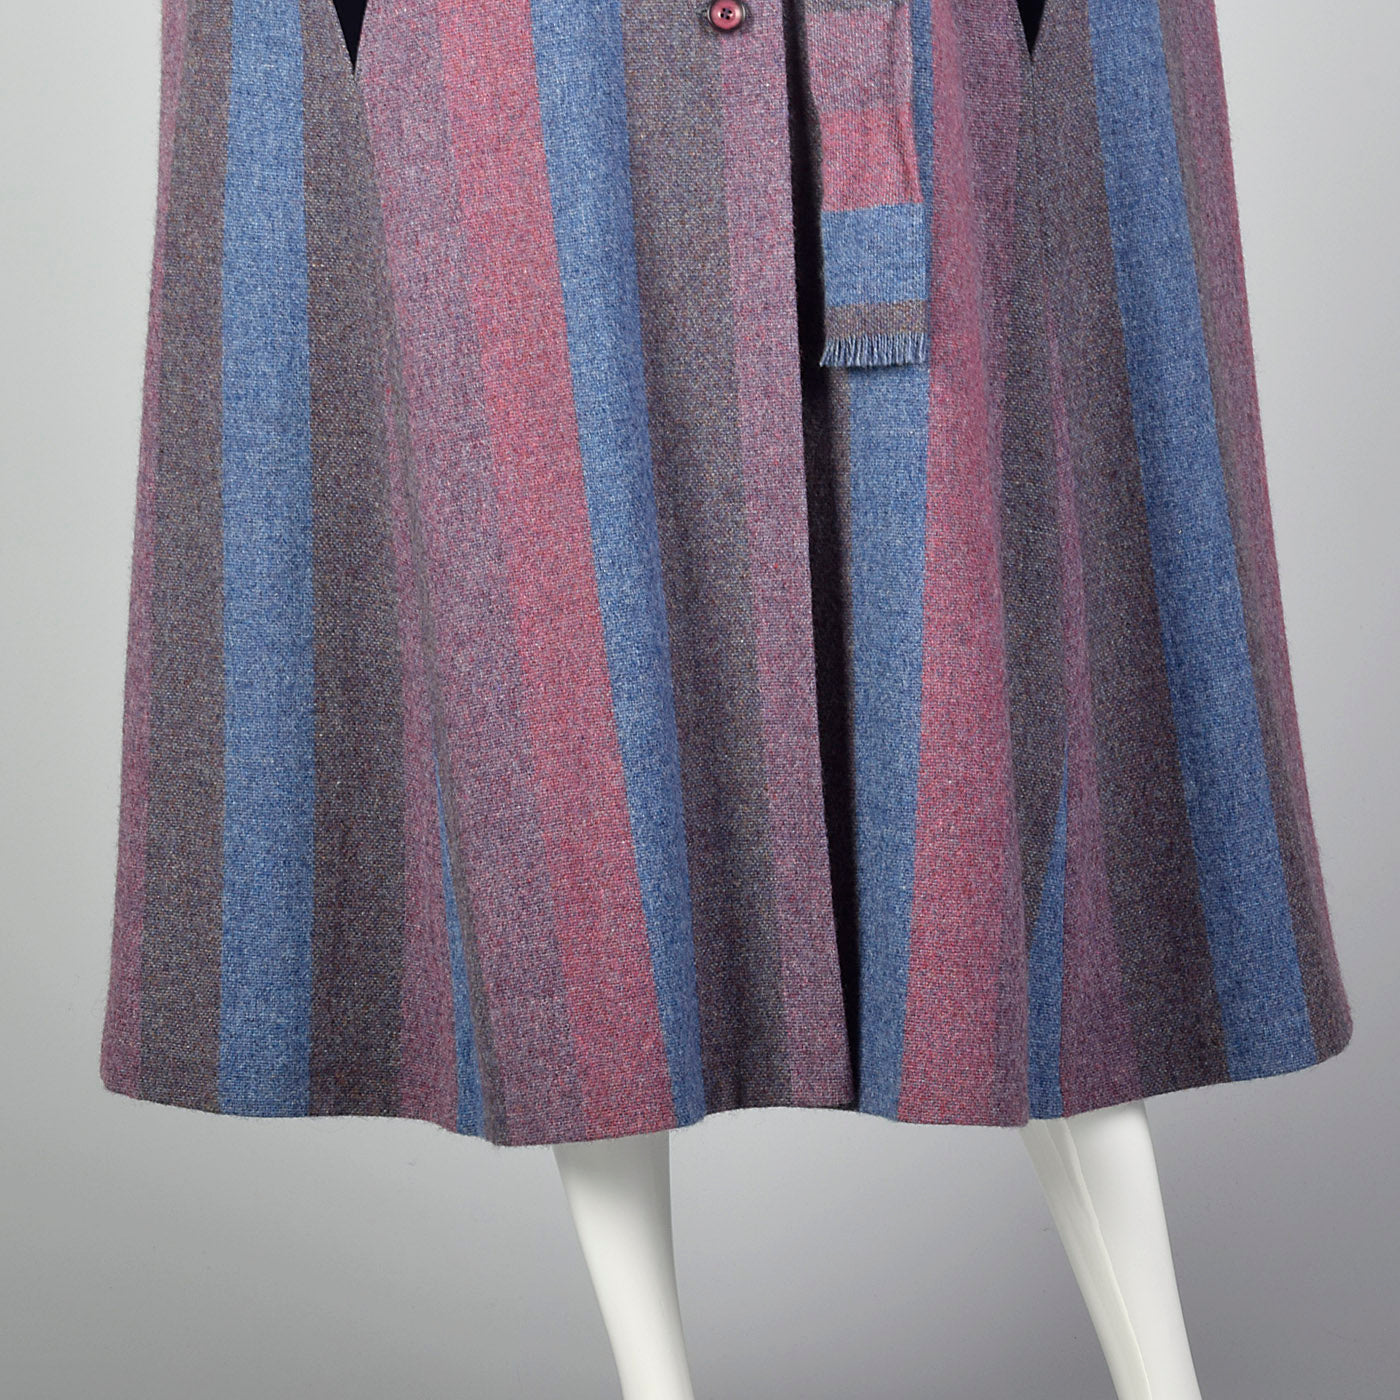 1970s Wool Cape with Attached Scarf